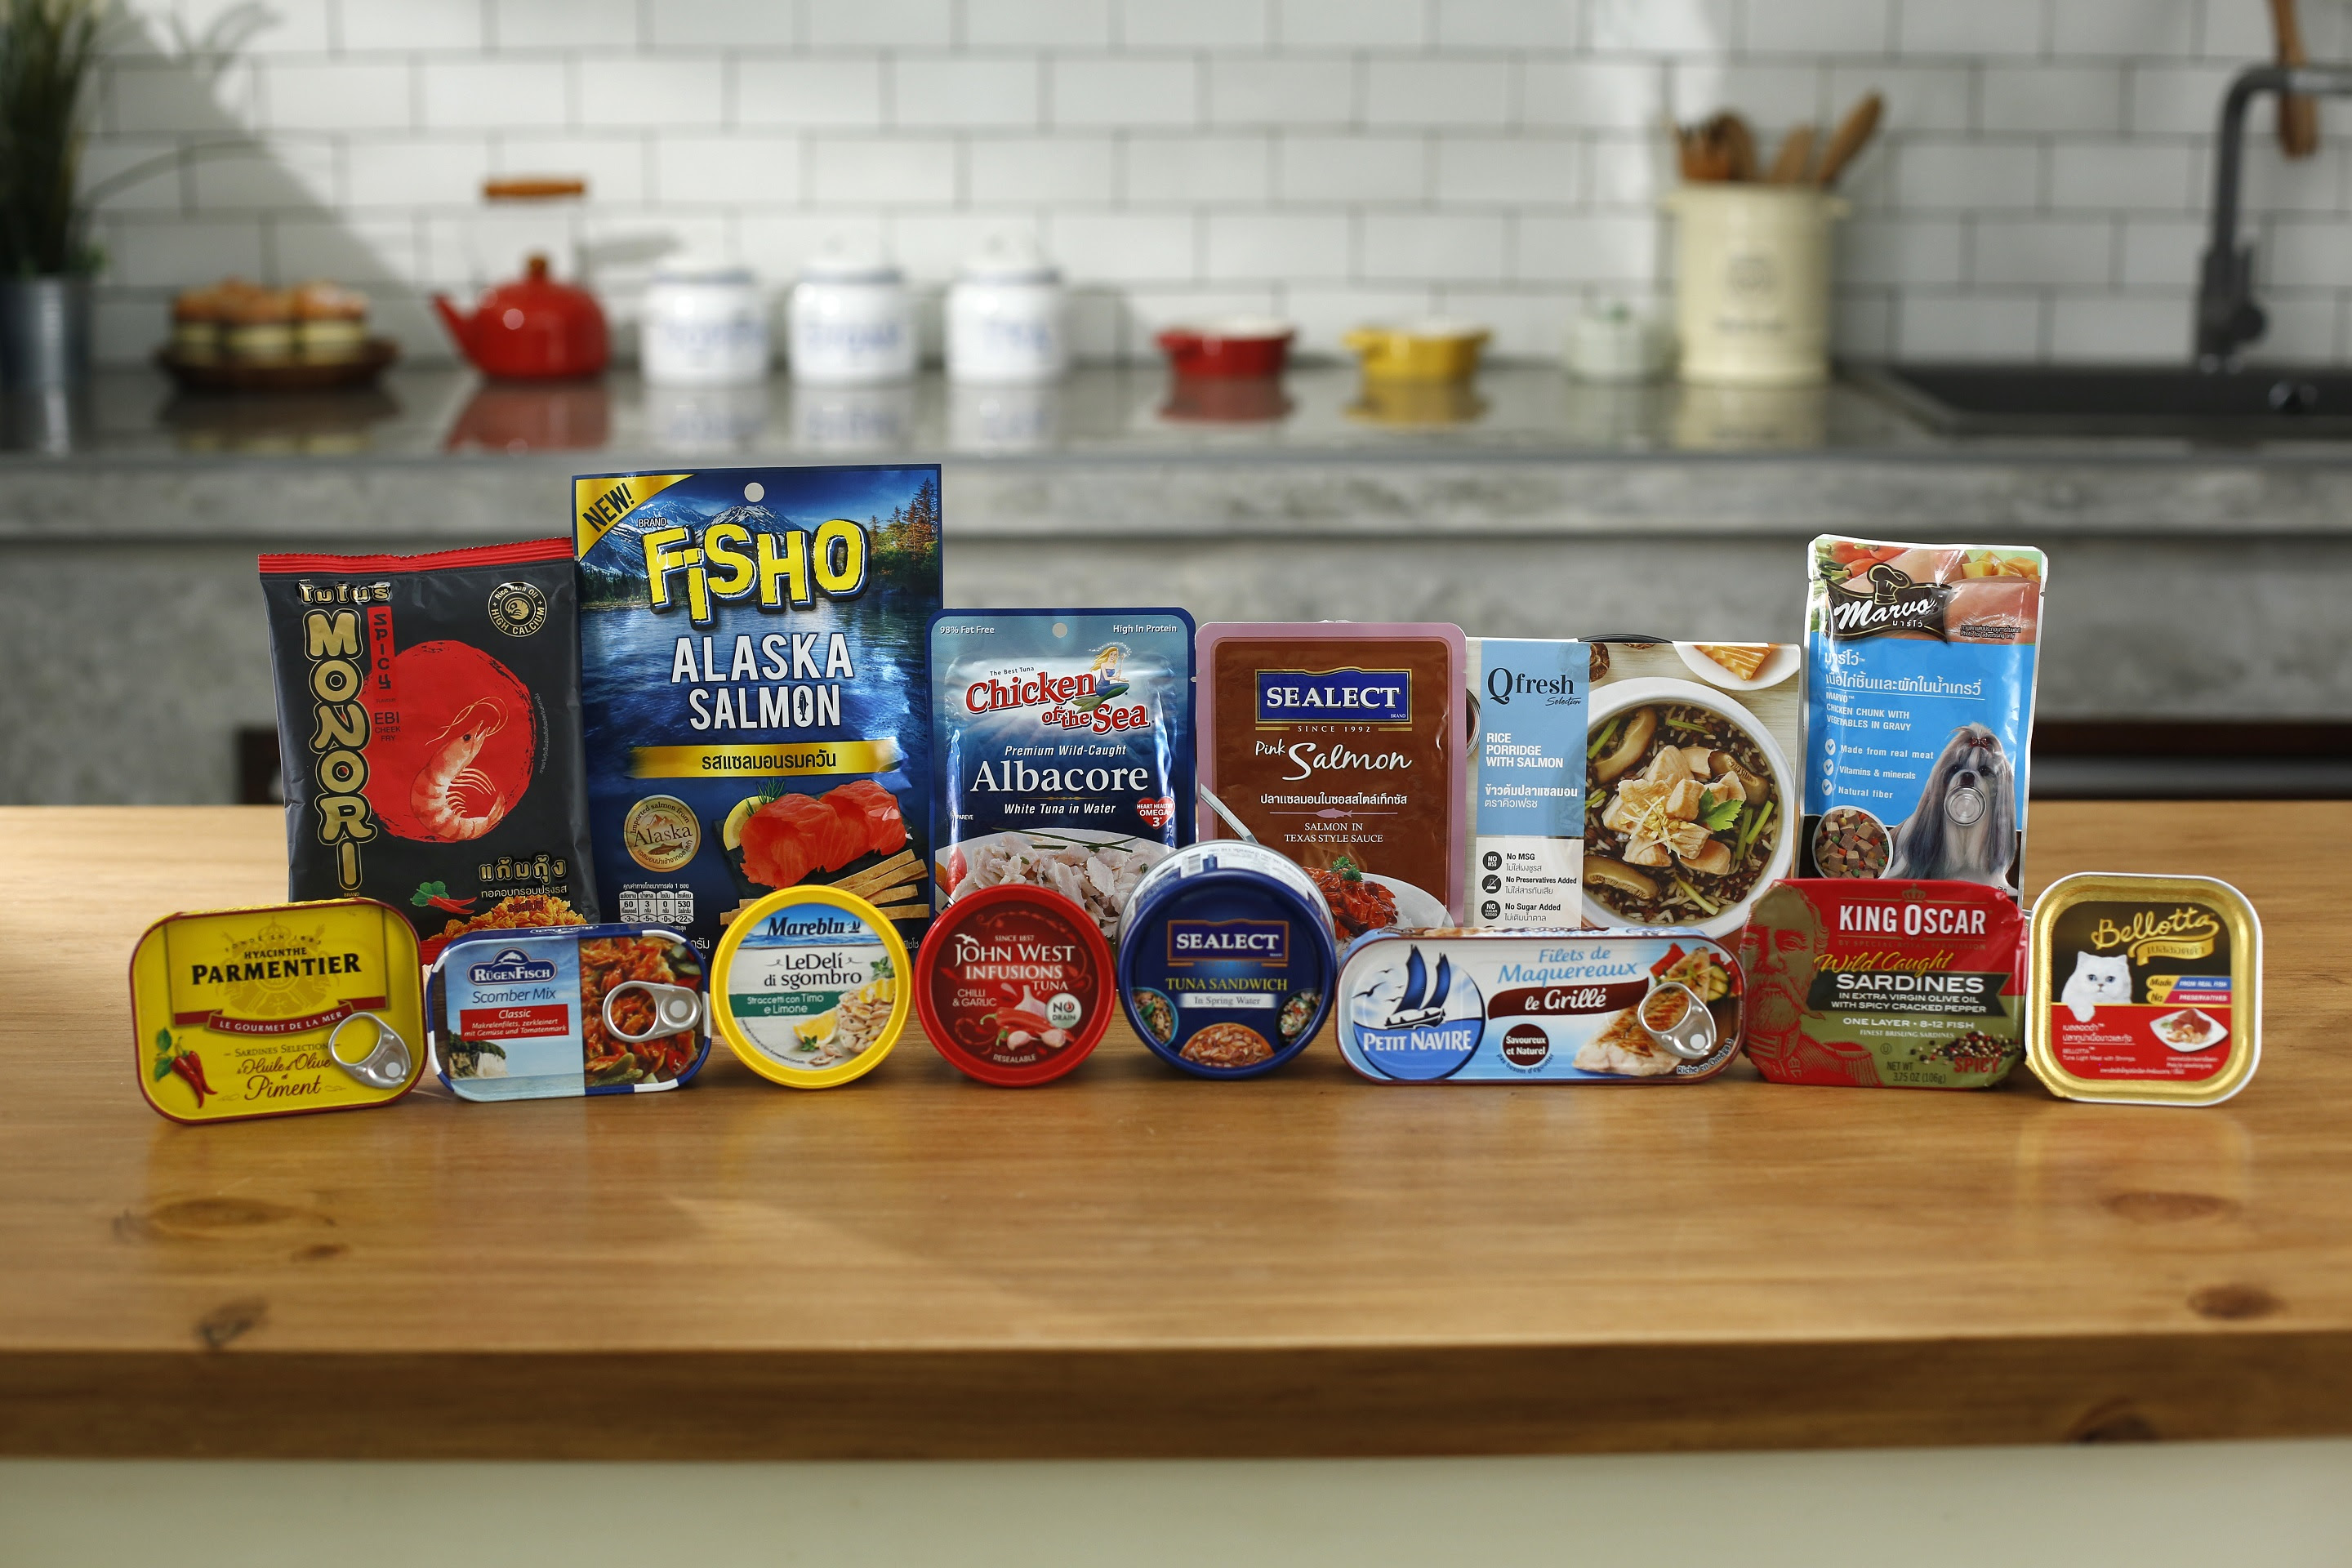 Thai Union enters Russian market with deal for 45% of canned tuna